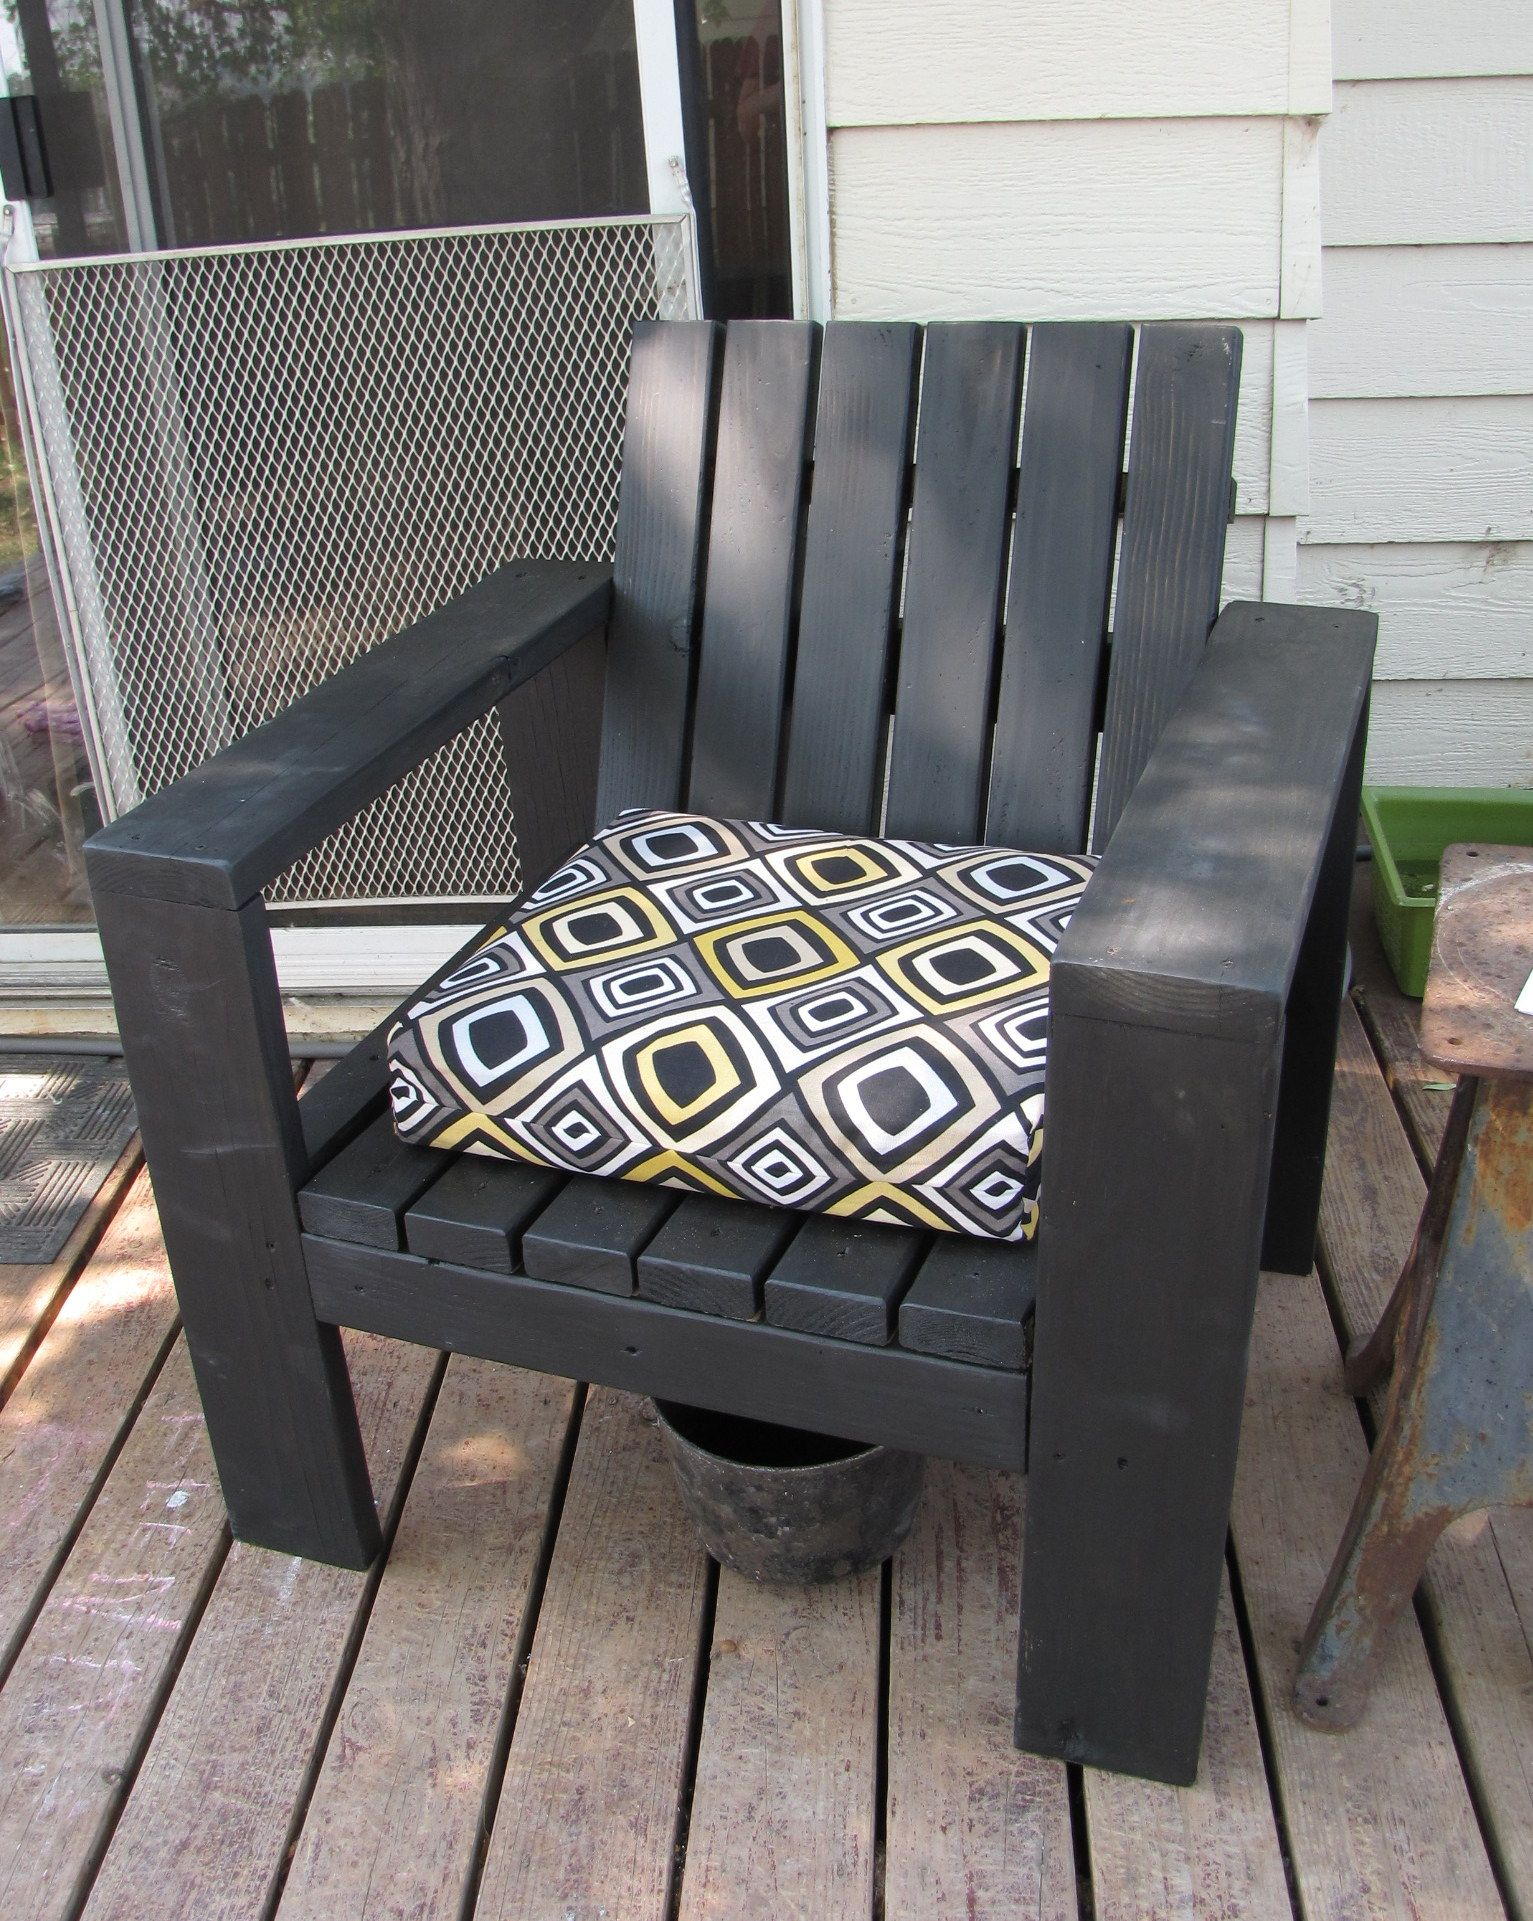 Simple Outdoor Lounge Chair - Beefed Up | Do It Yourself ...